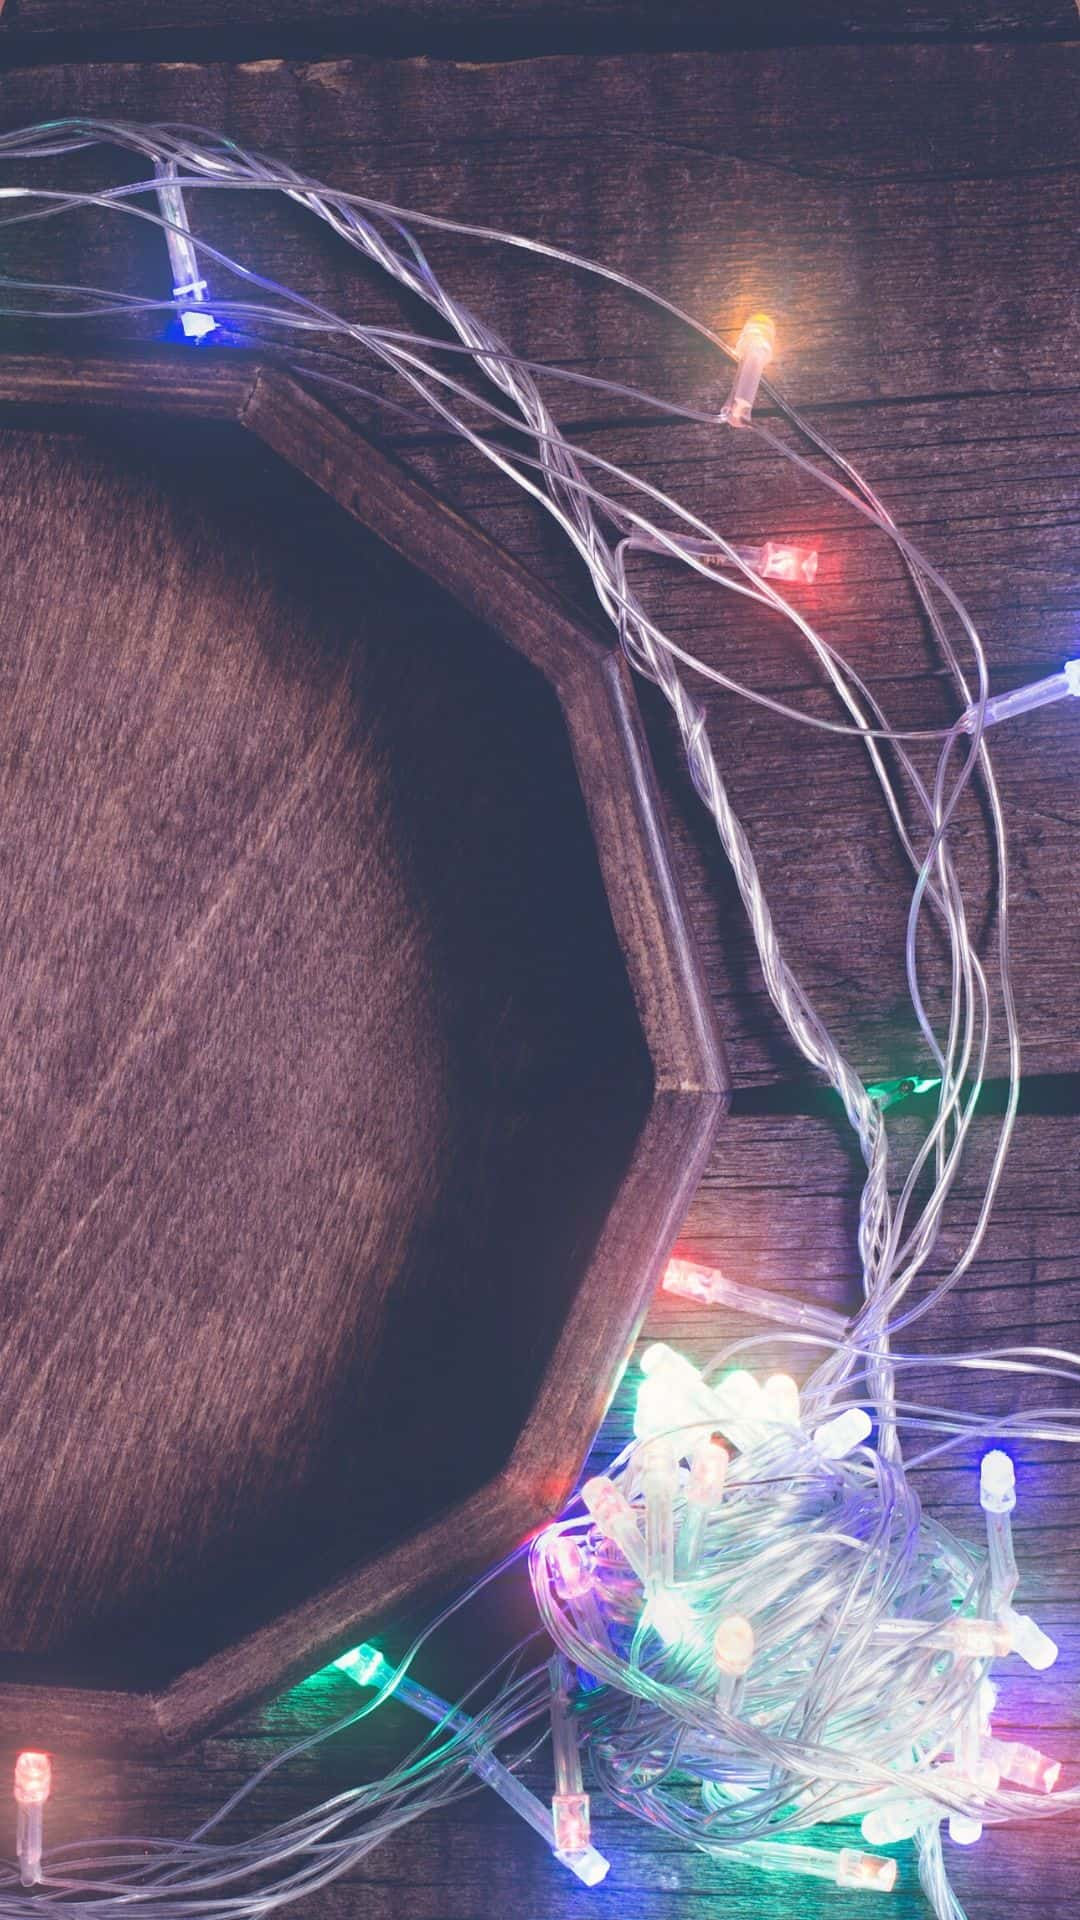 Christmas Wallpapers For iPhone Wooden Tray & Christmas Lights